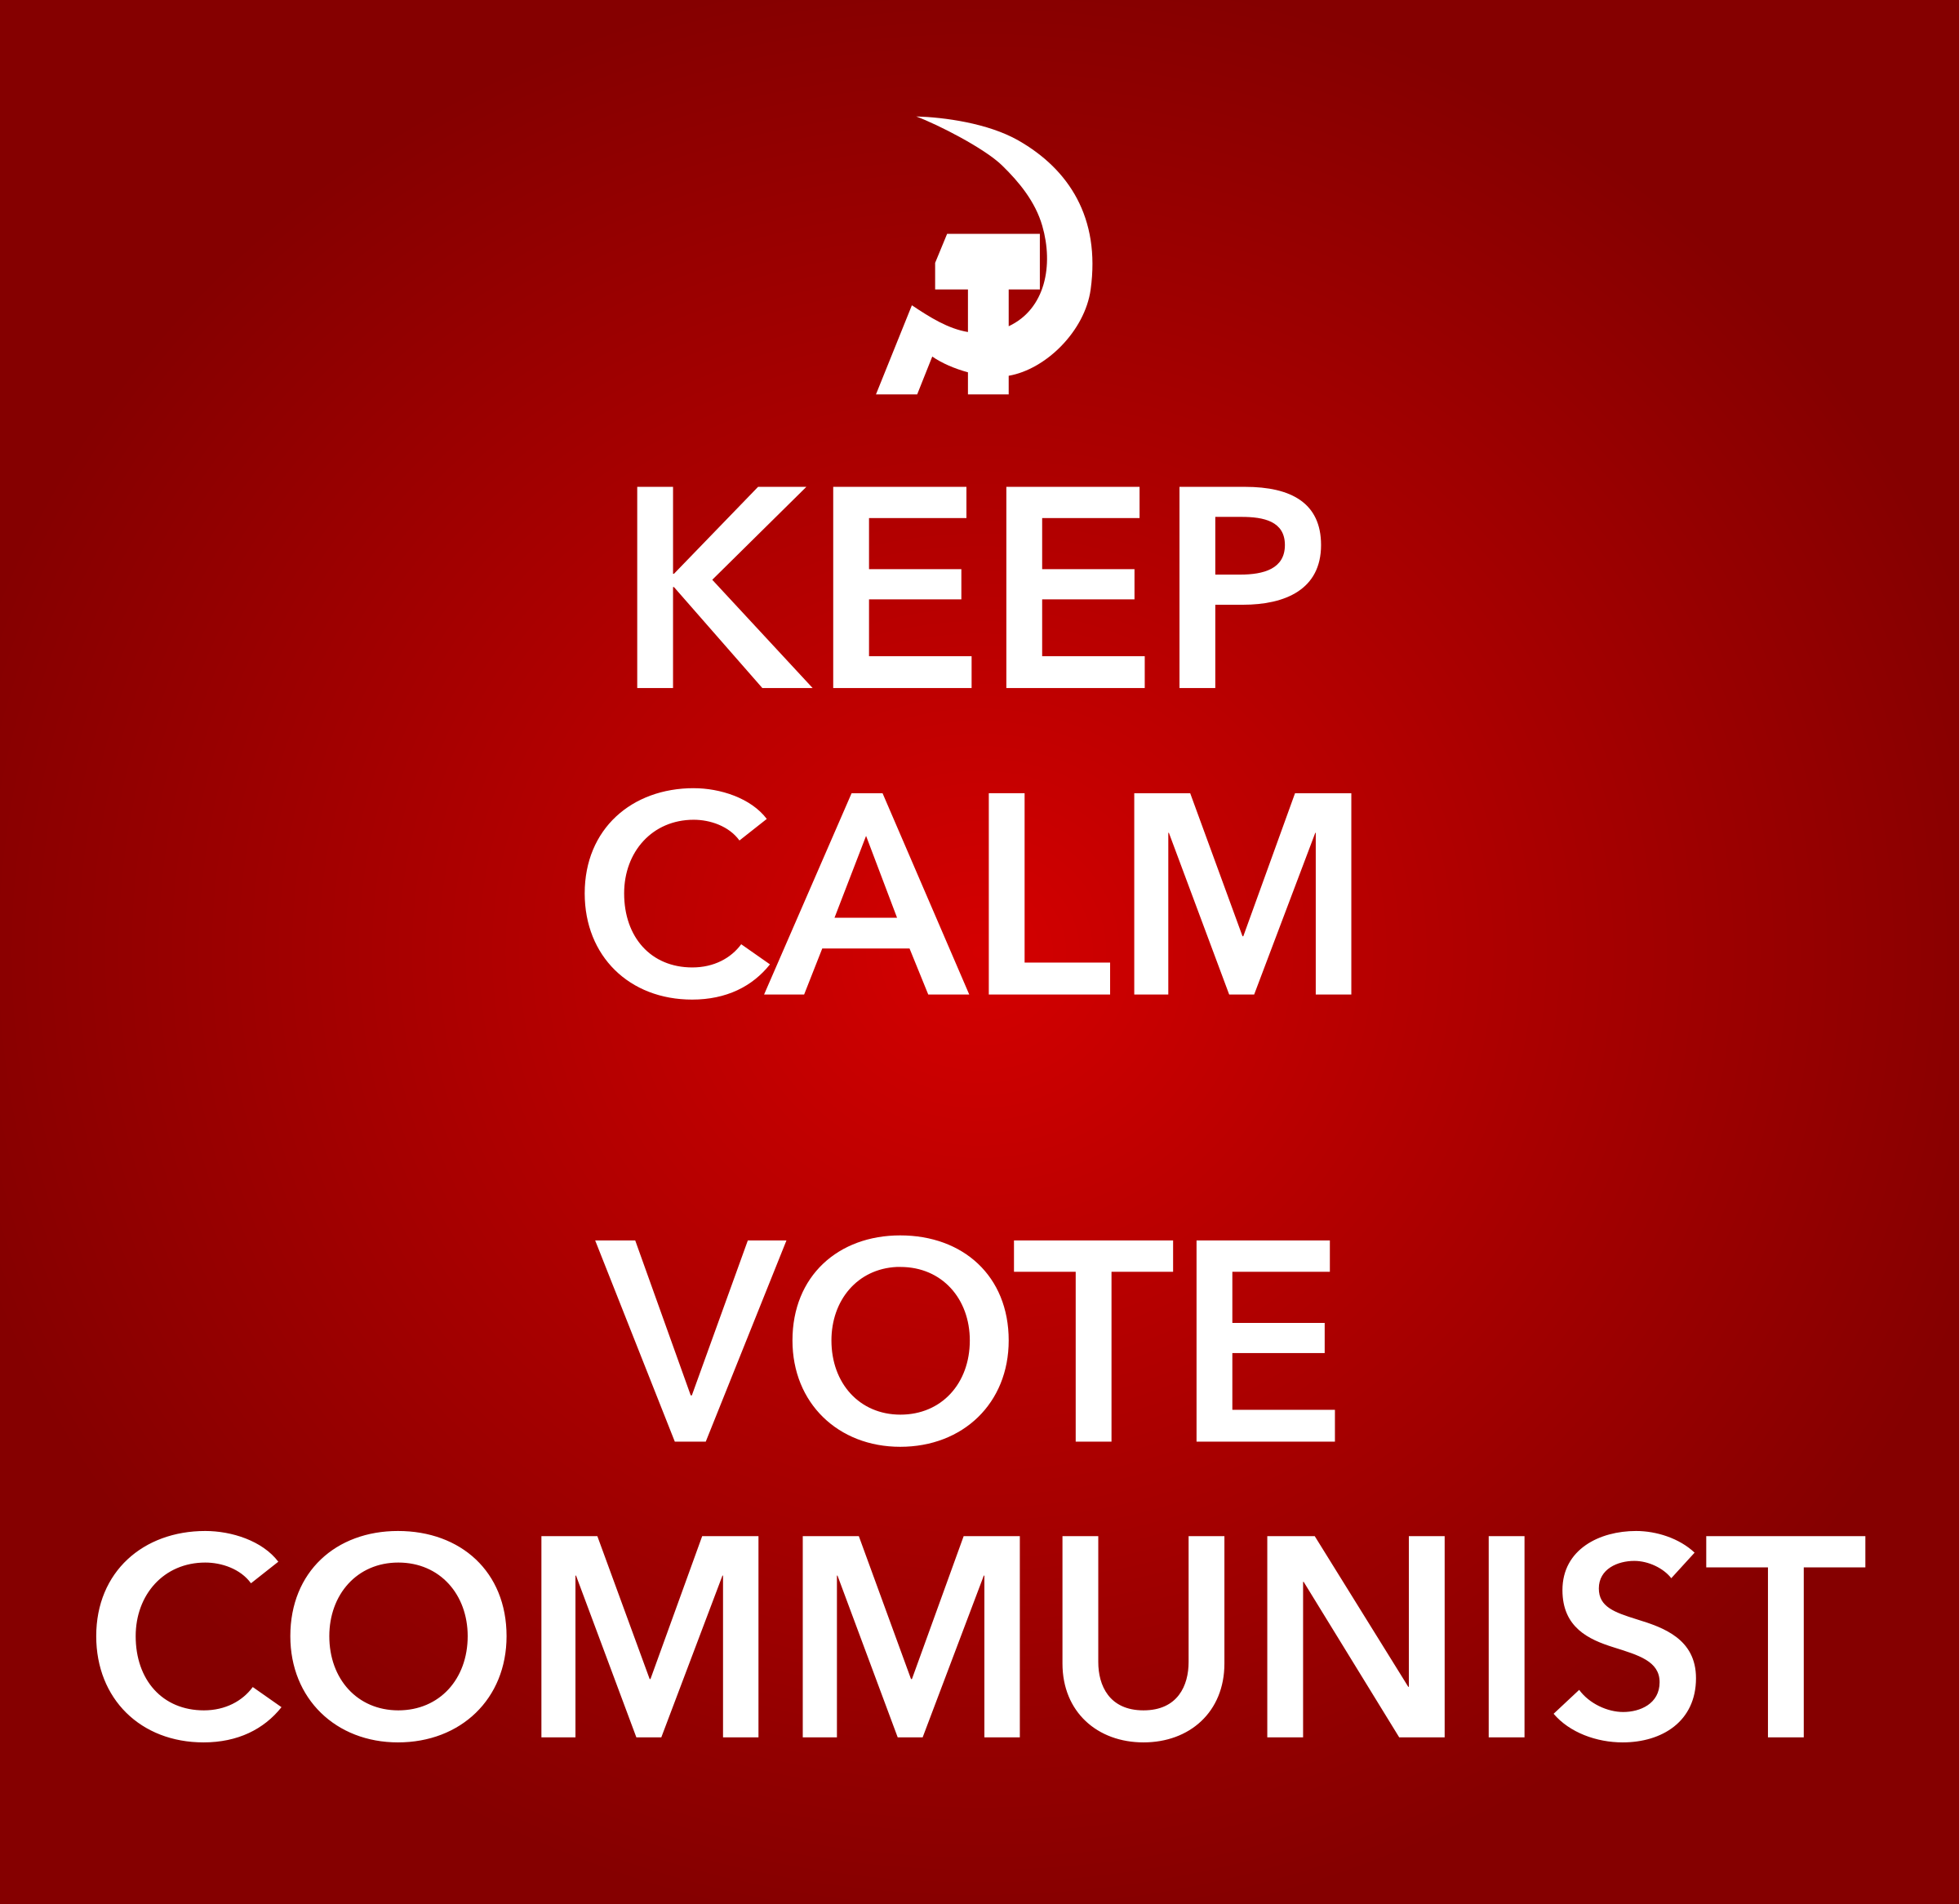 KEEP CALM AND VOTE COMMUNIST by worker